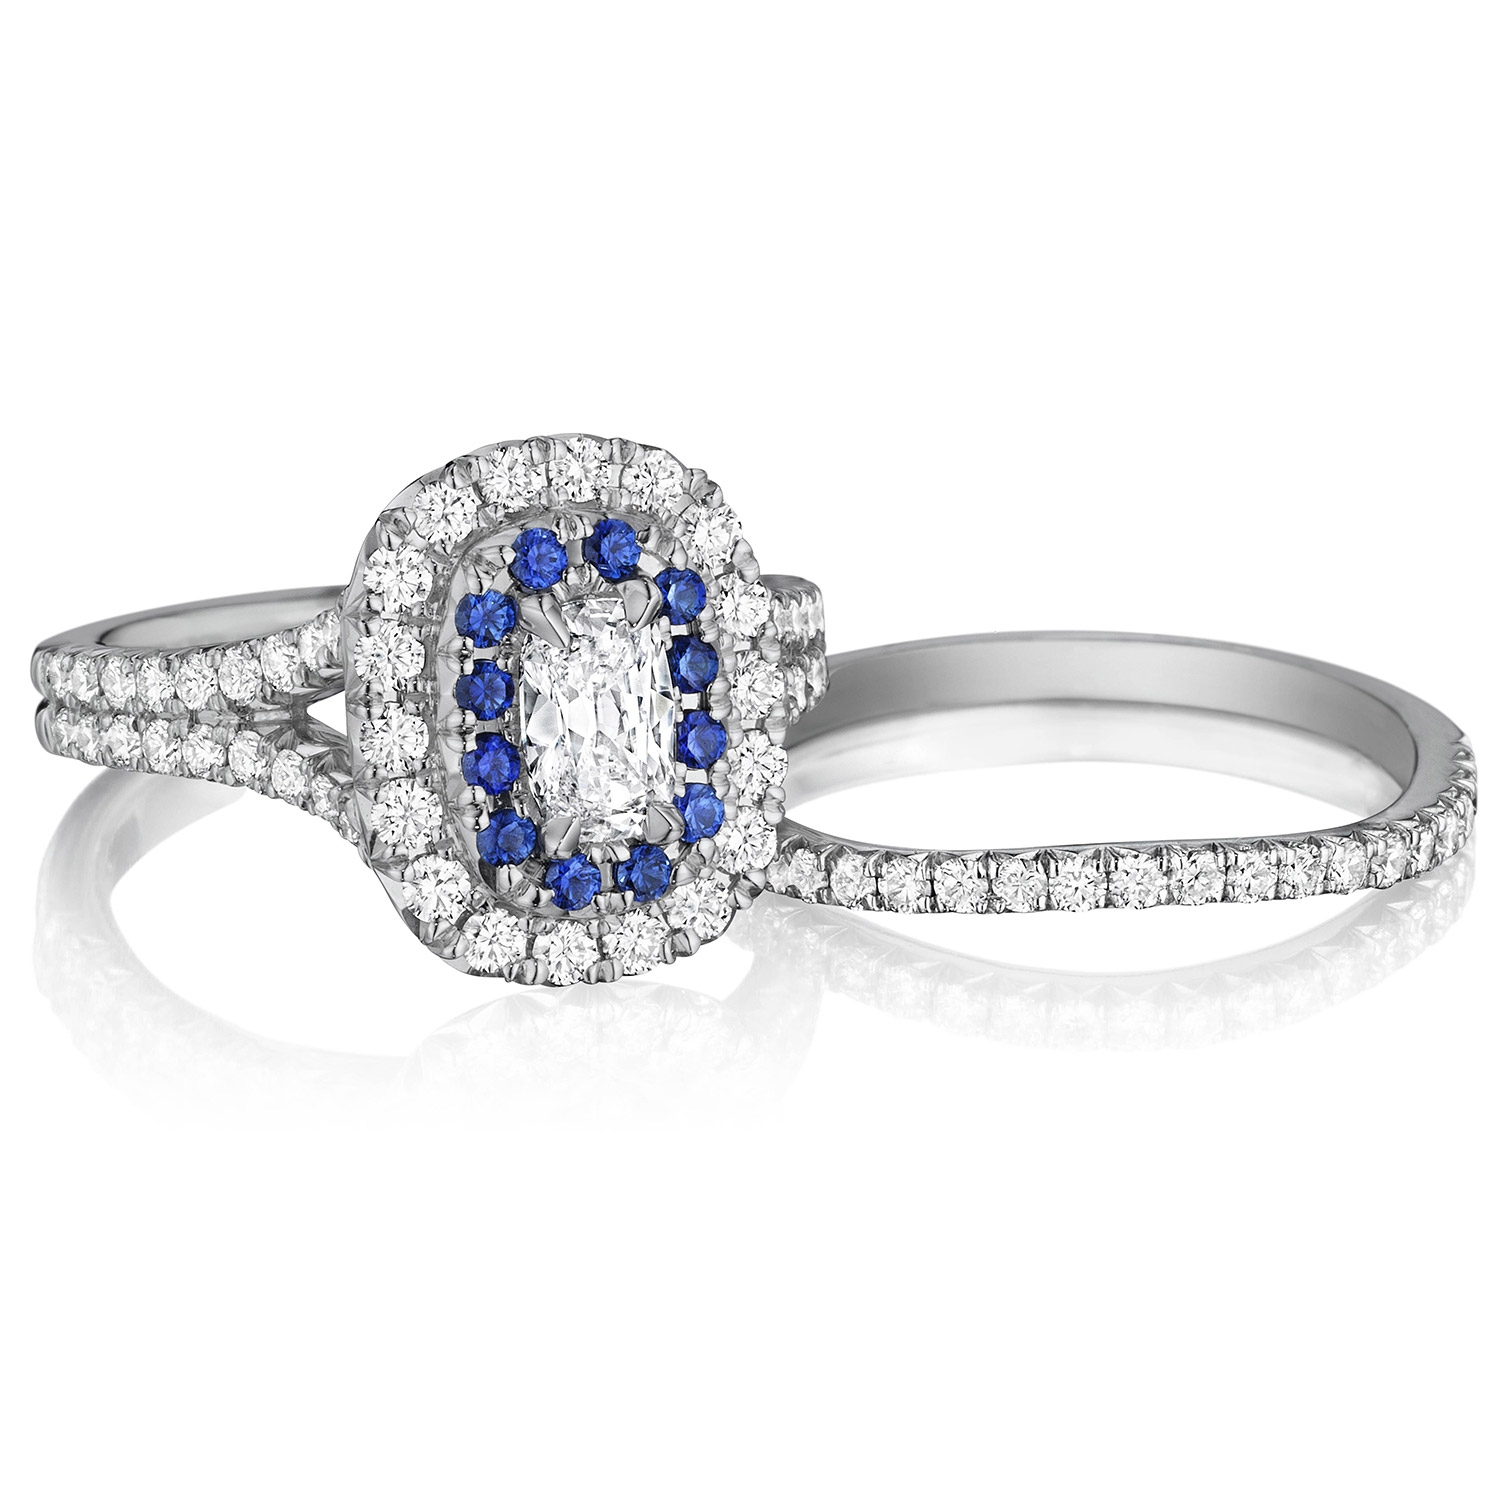 Henri Daussi AQSB Cushion Double Halo Diamond & Sapphire Engagement Ring Alternative View 2